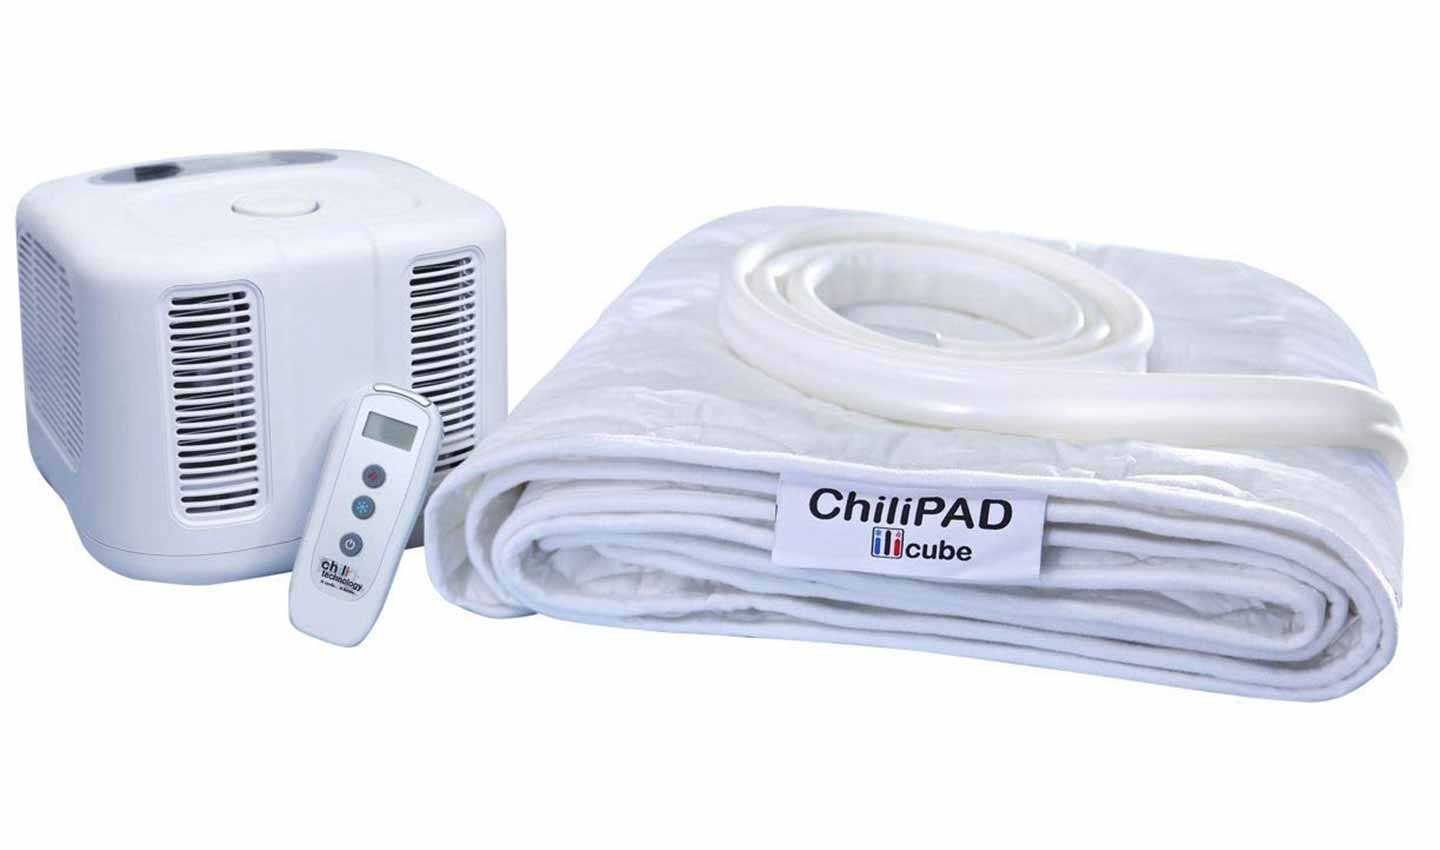 Chilipad Cube Reviews 2019 A Must Read Before Buying